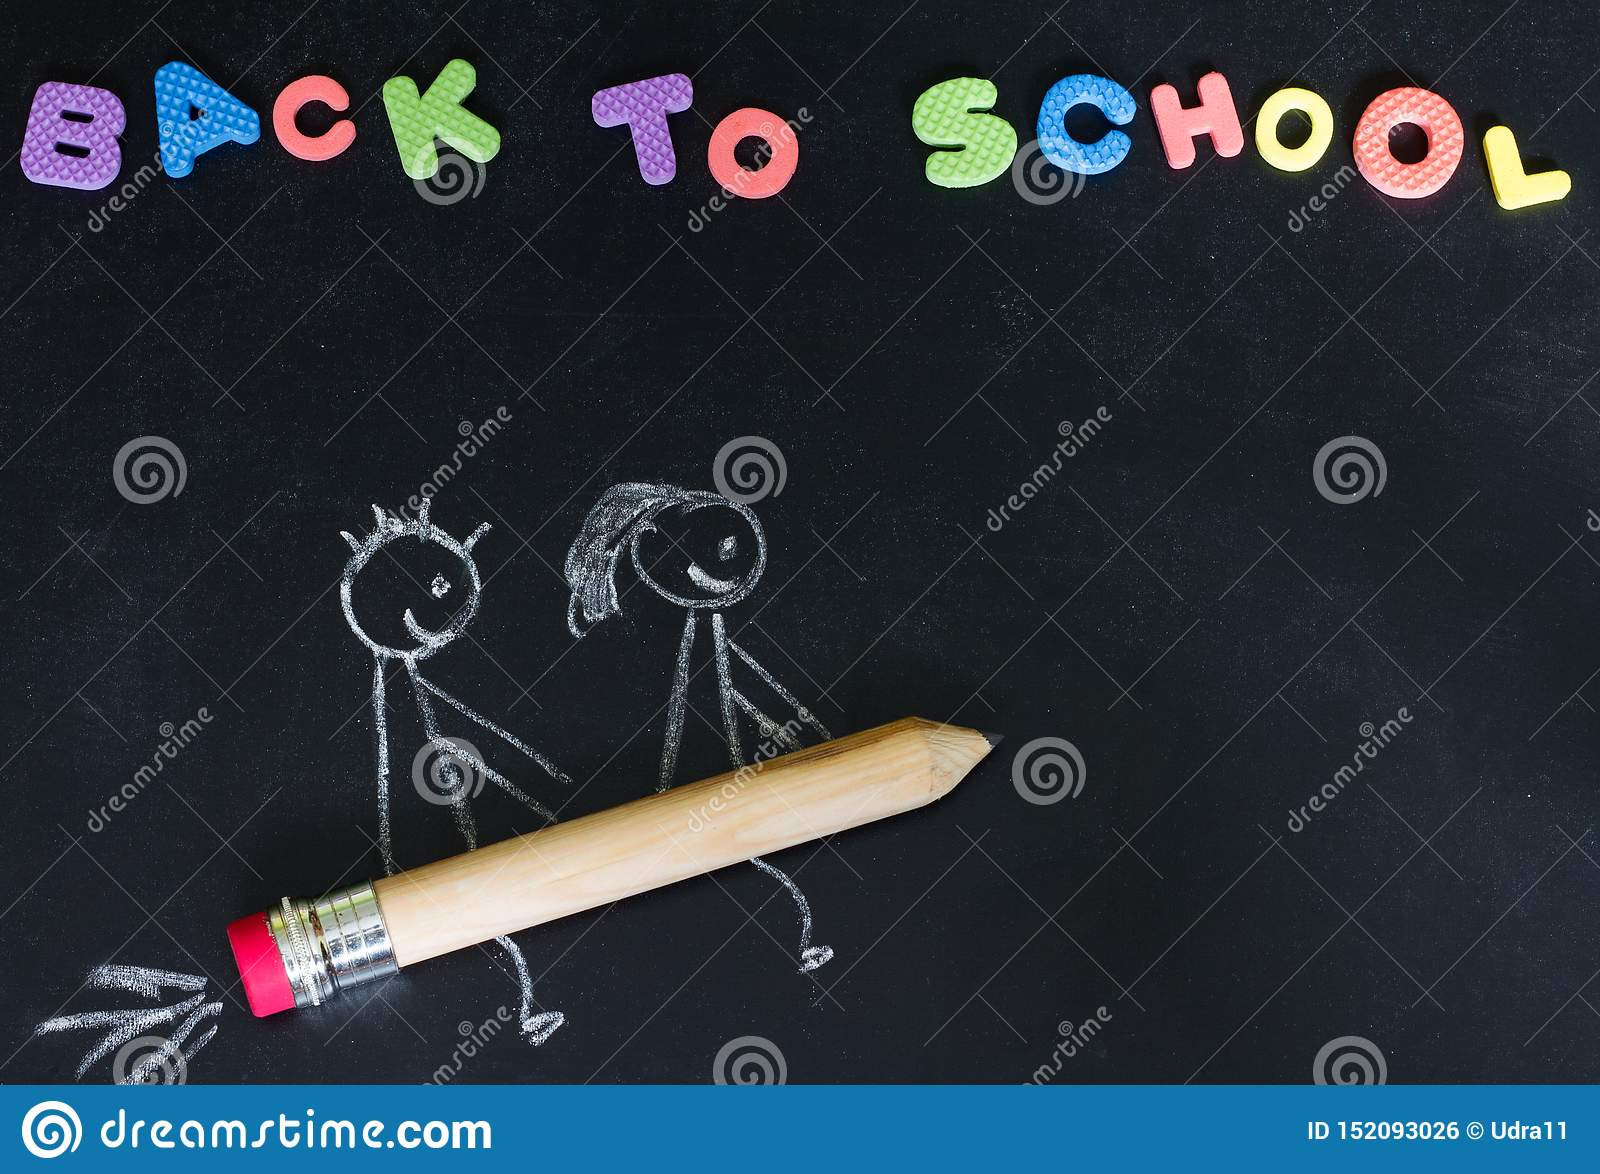 Back to school background concept with kids on the pencil rocket